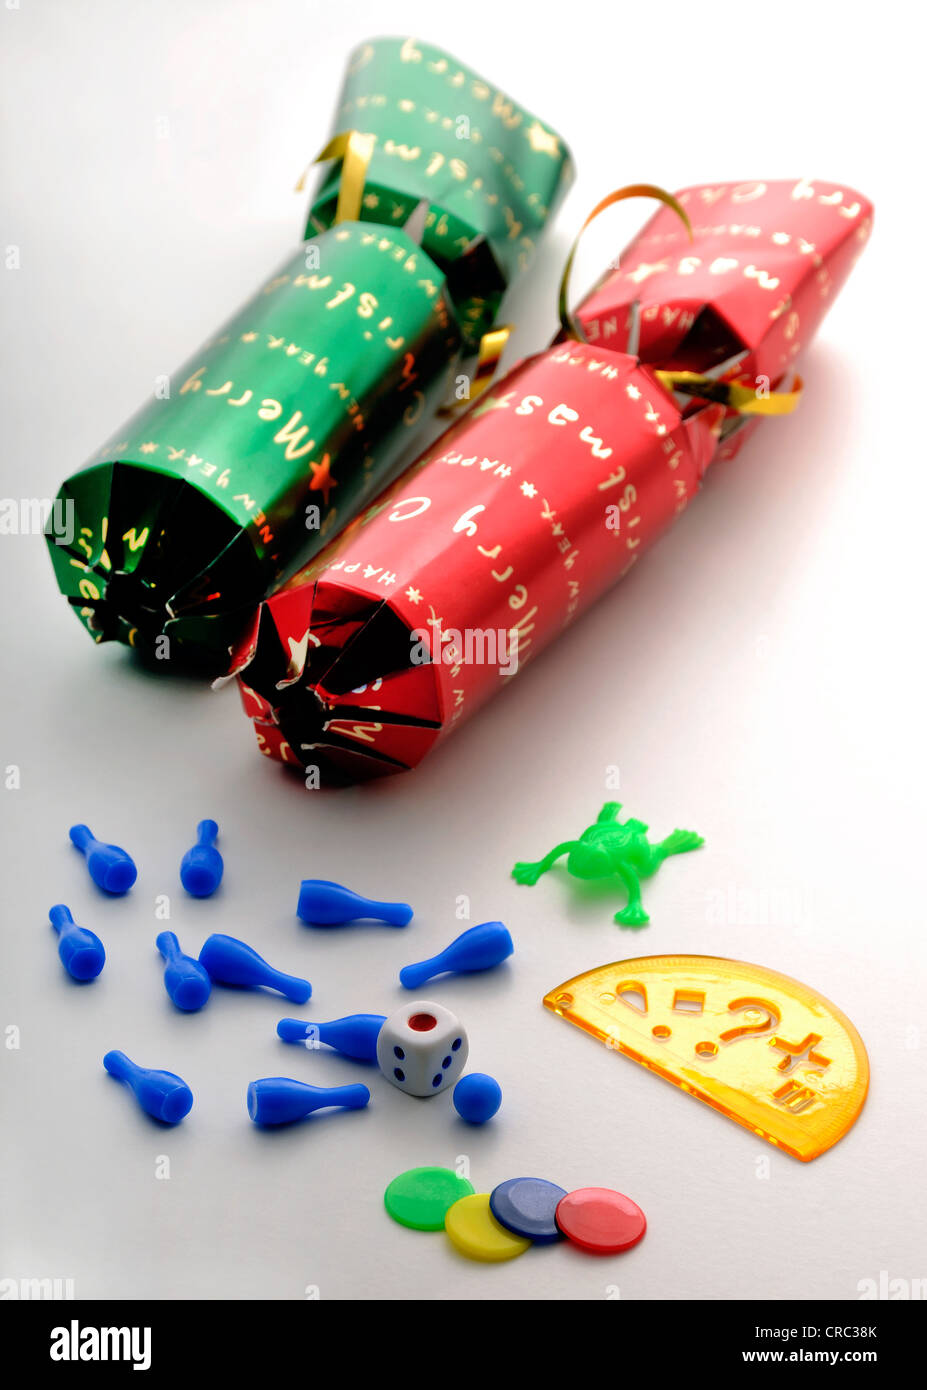 Christmas Crackers Contents.Christmas Crackers And Their Contents Stock Photo 48823843